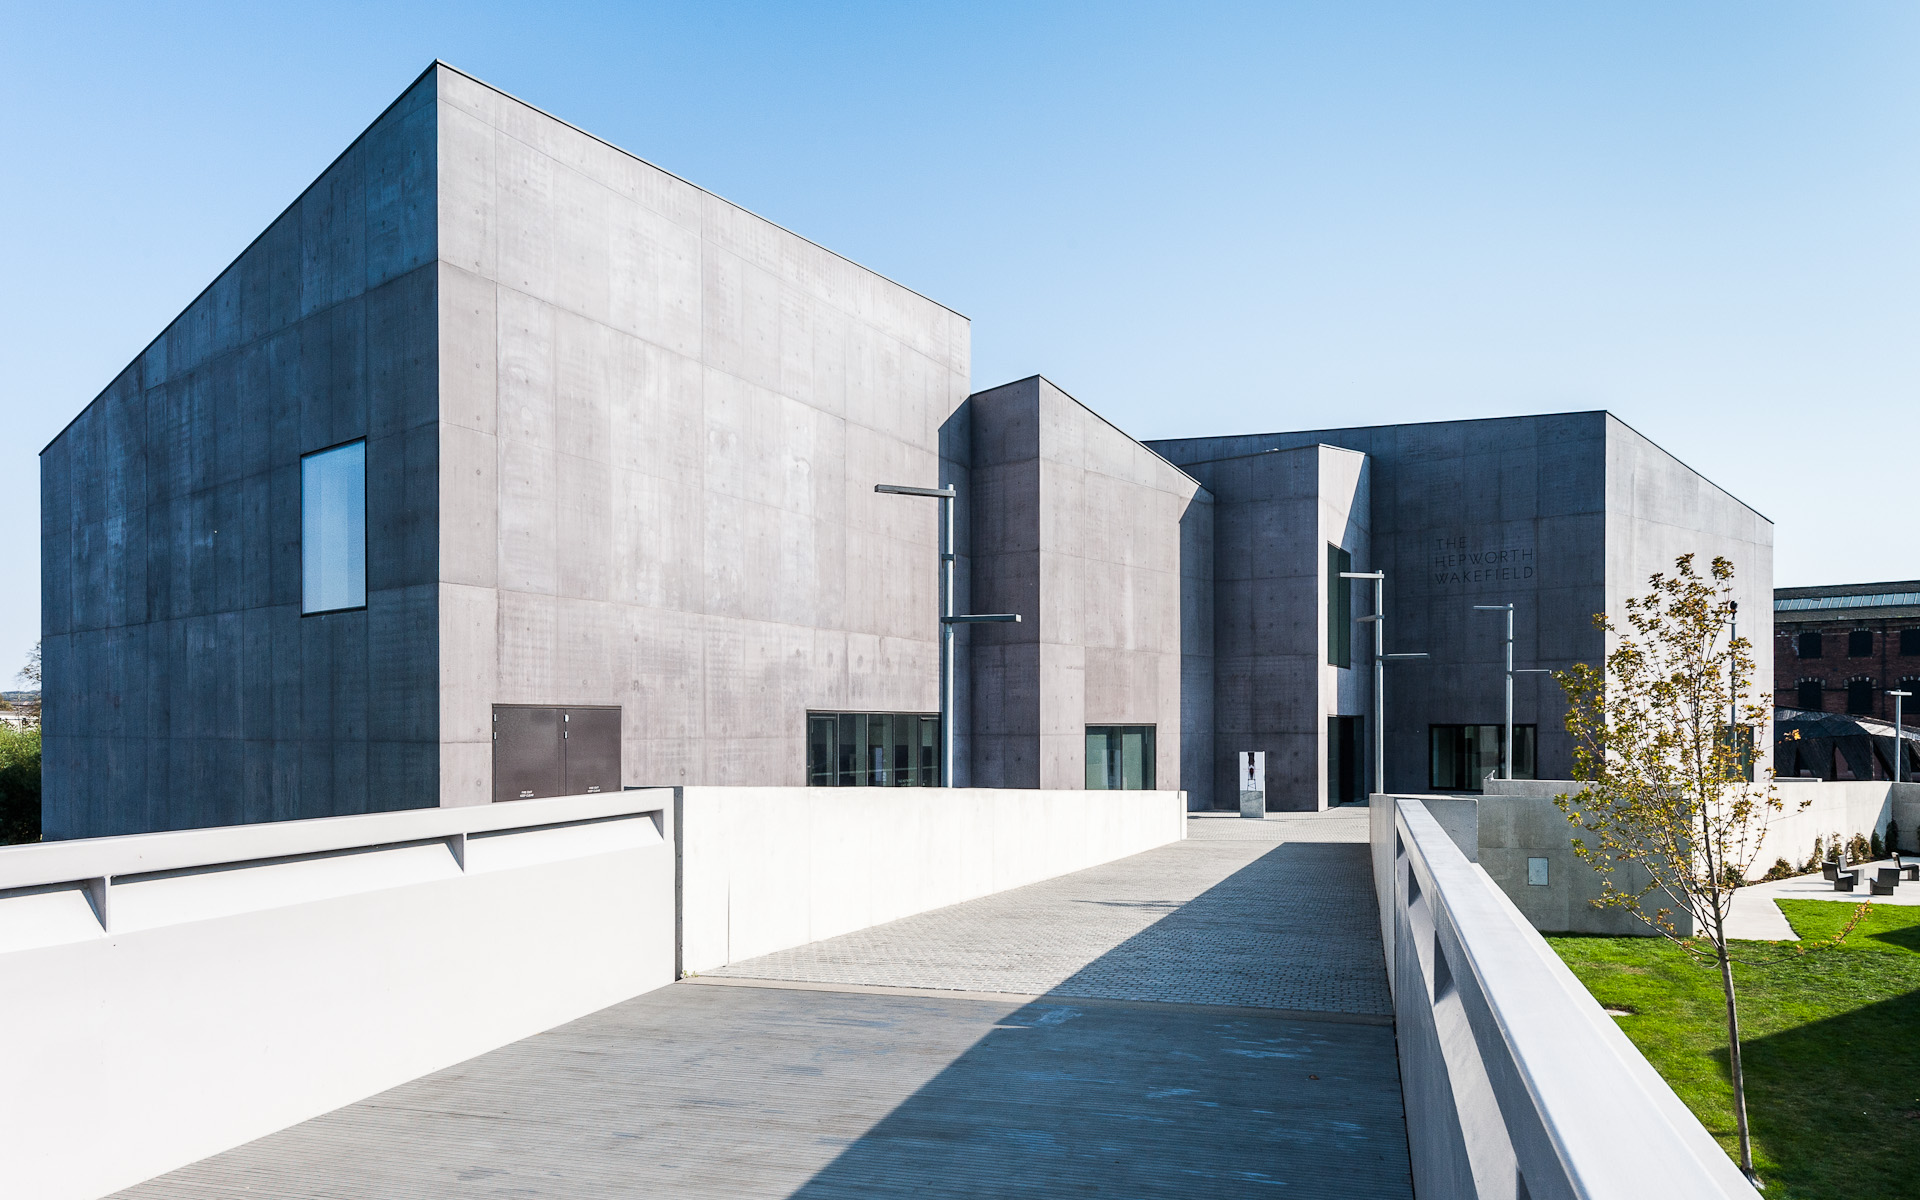 THE HEPWORTH, WAKEFIELD   |   David Chipperfield Architects